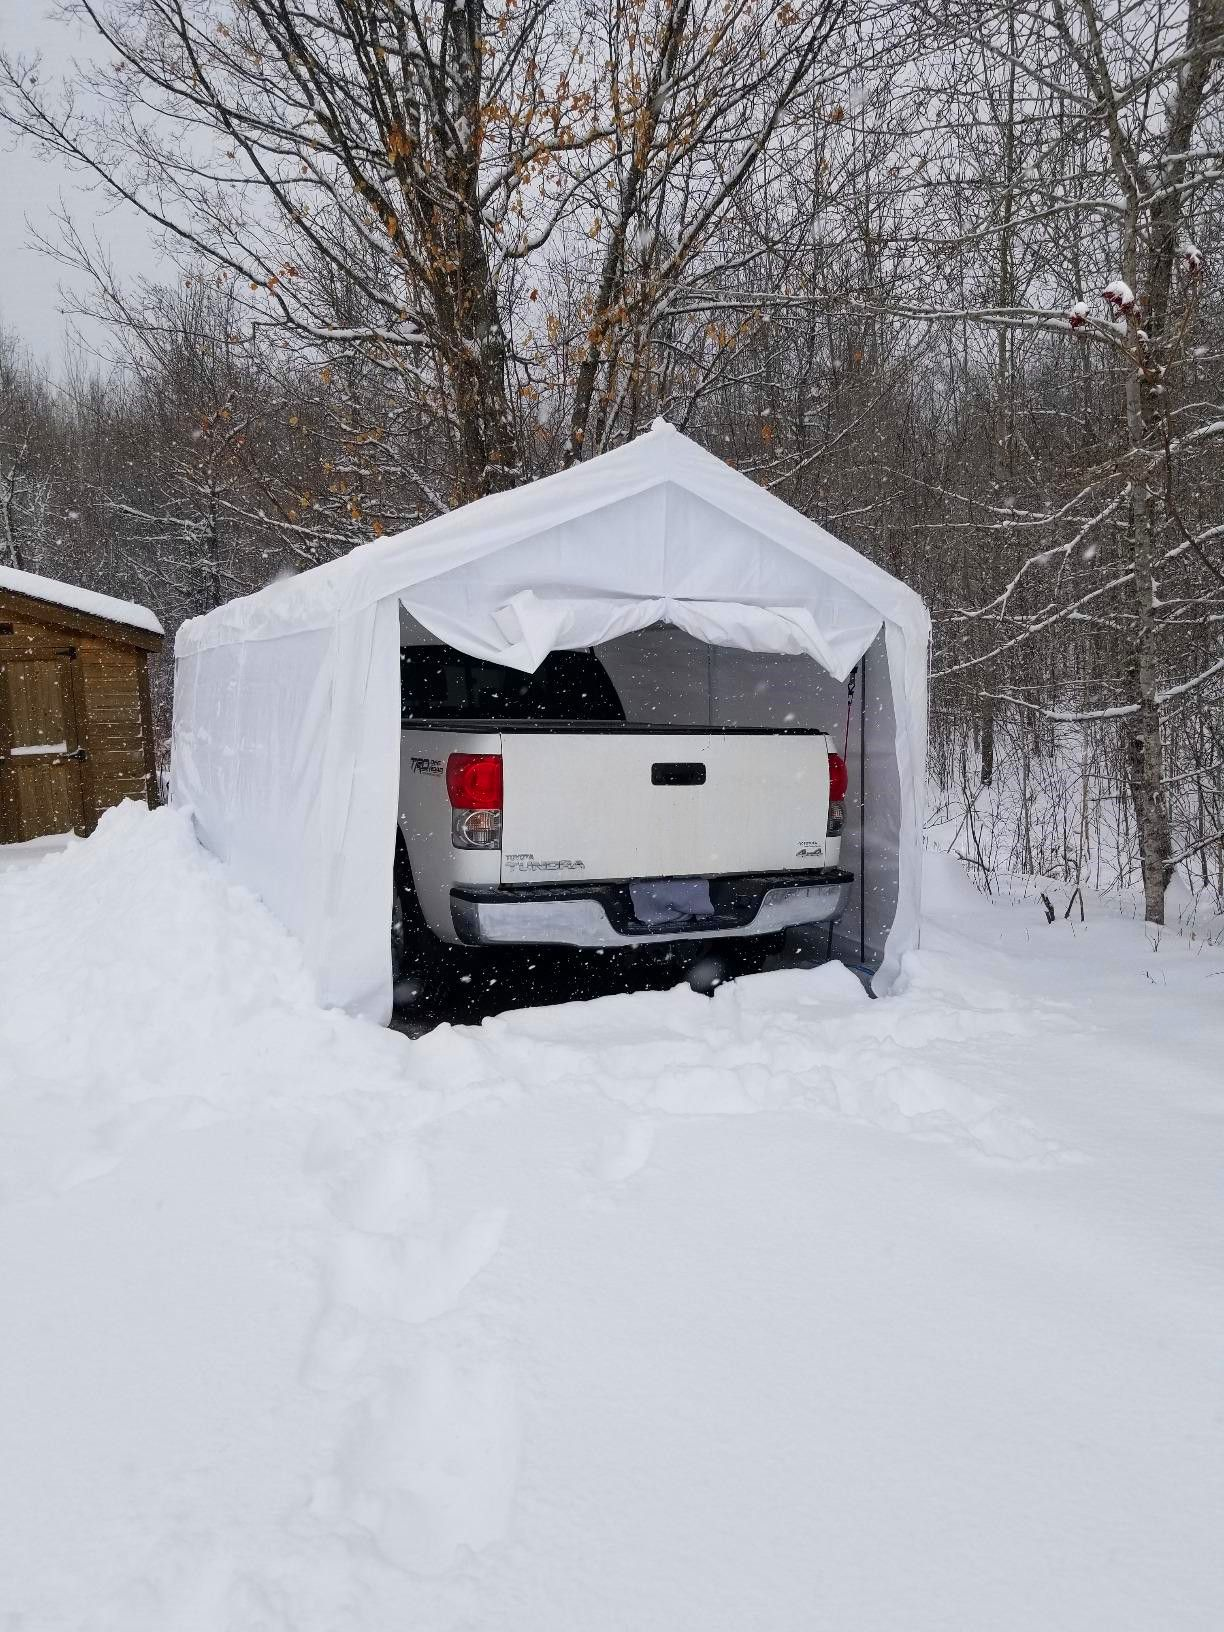 Heavy Duty Portable Carport For Snow Days In 2020 Portable Carport Car Shelter Carport Canopy